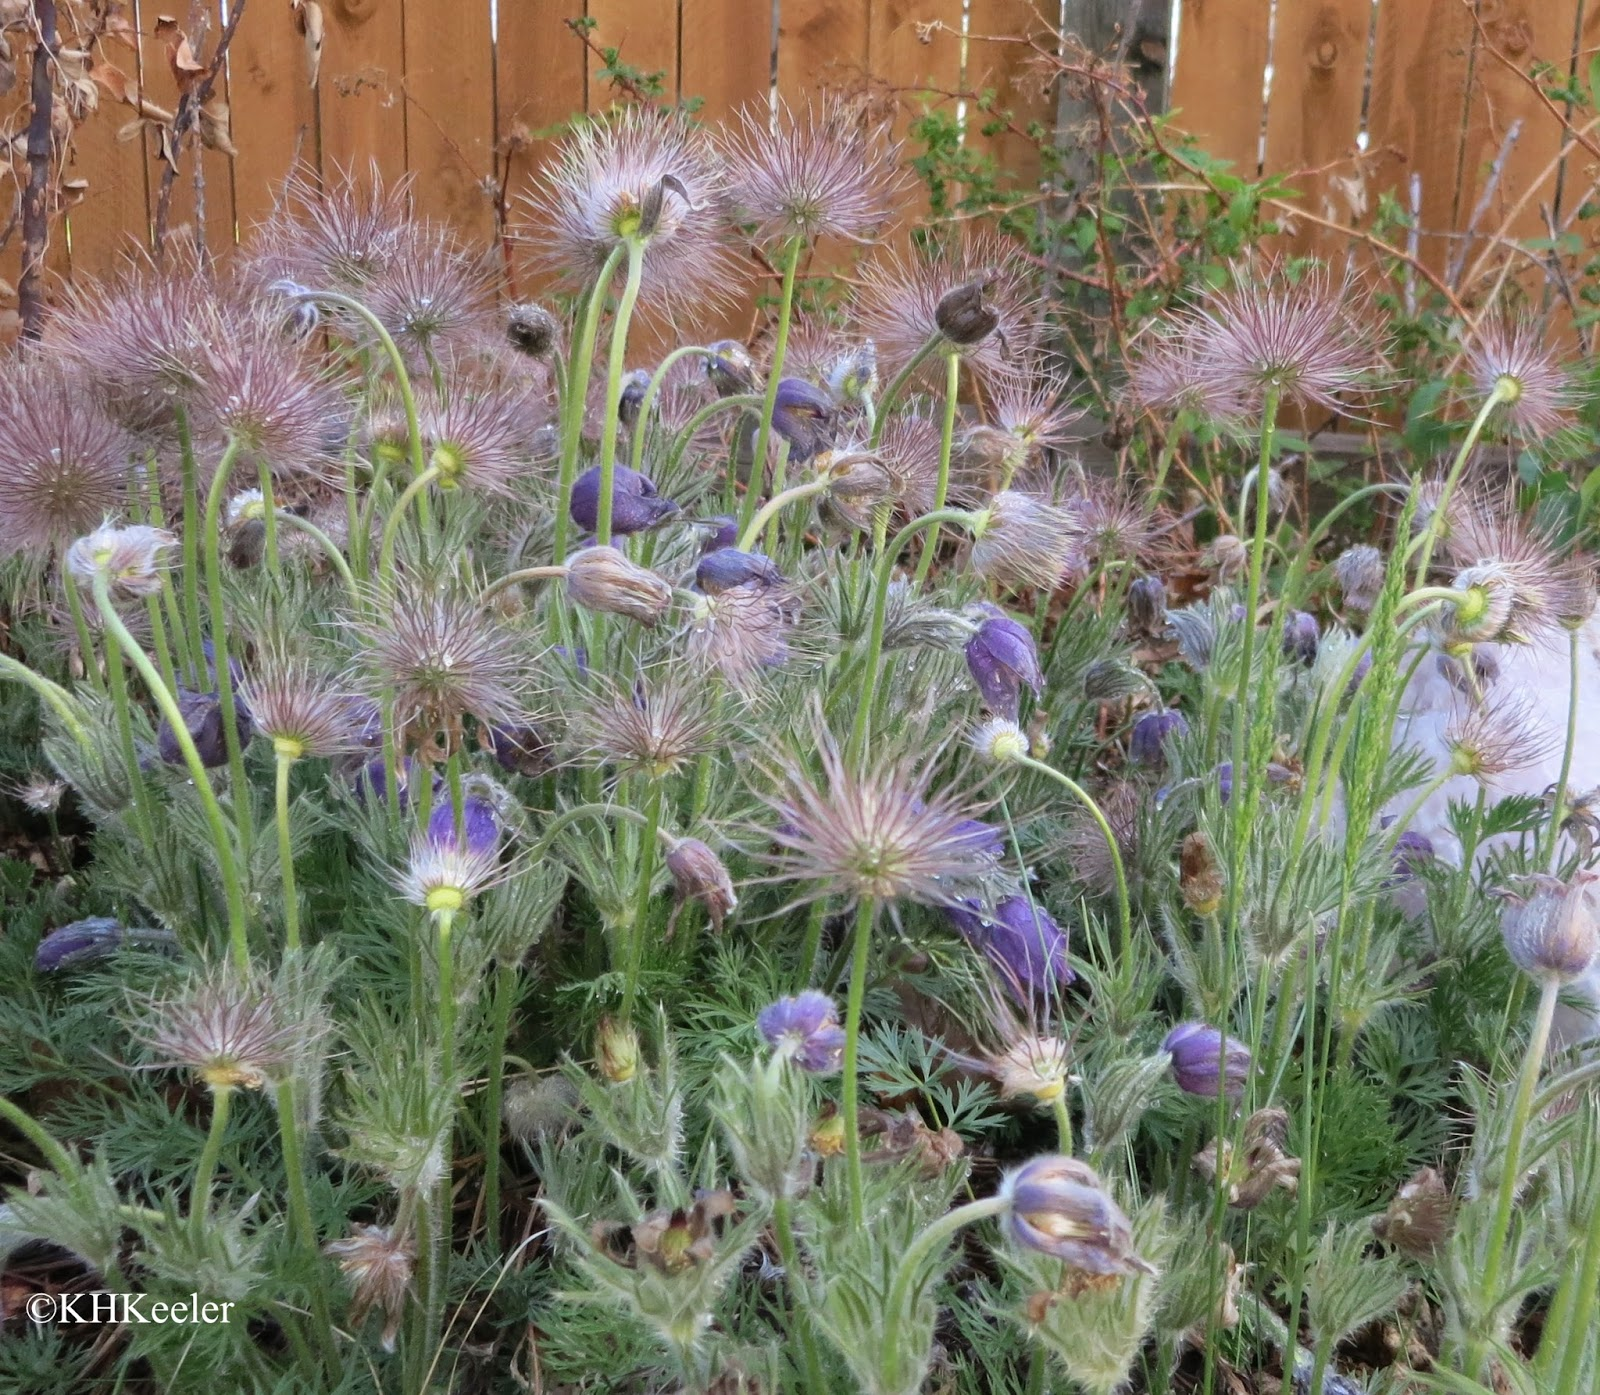 pasqueflower, Anemone patens, flowers and seed heads